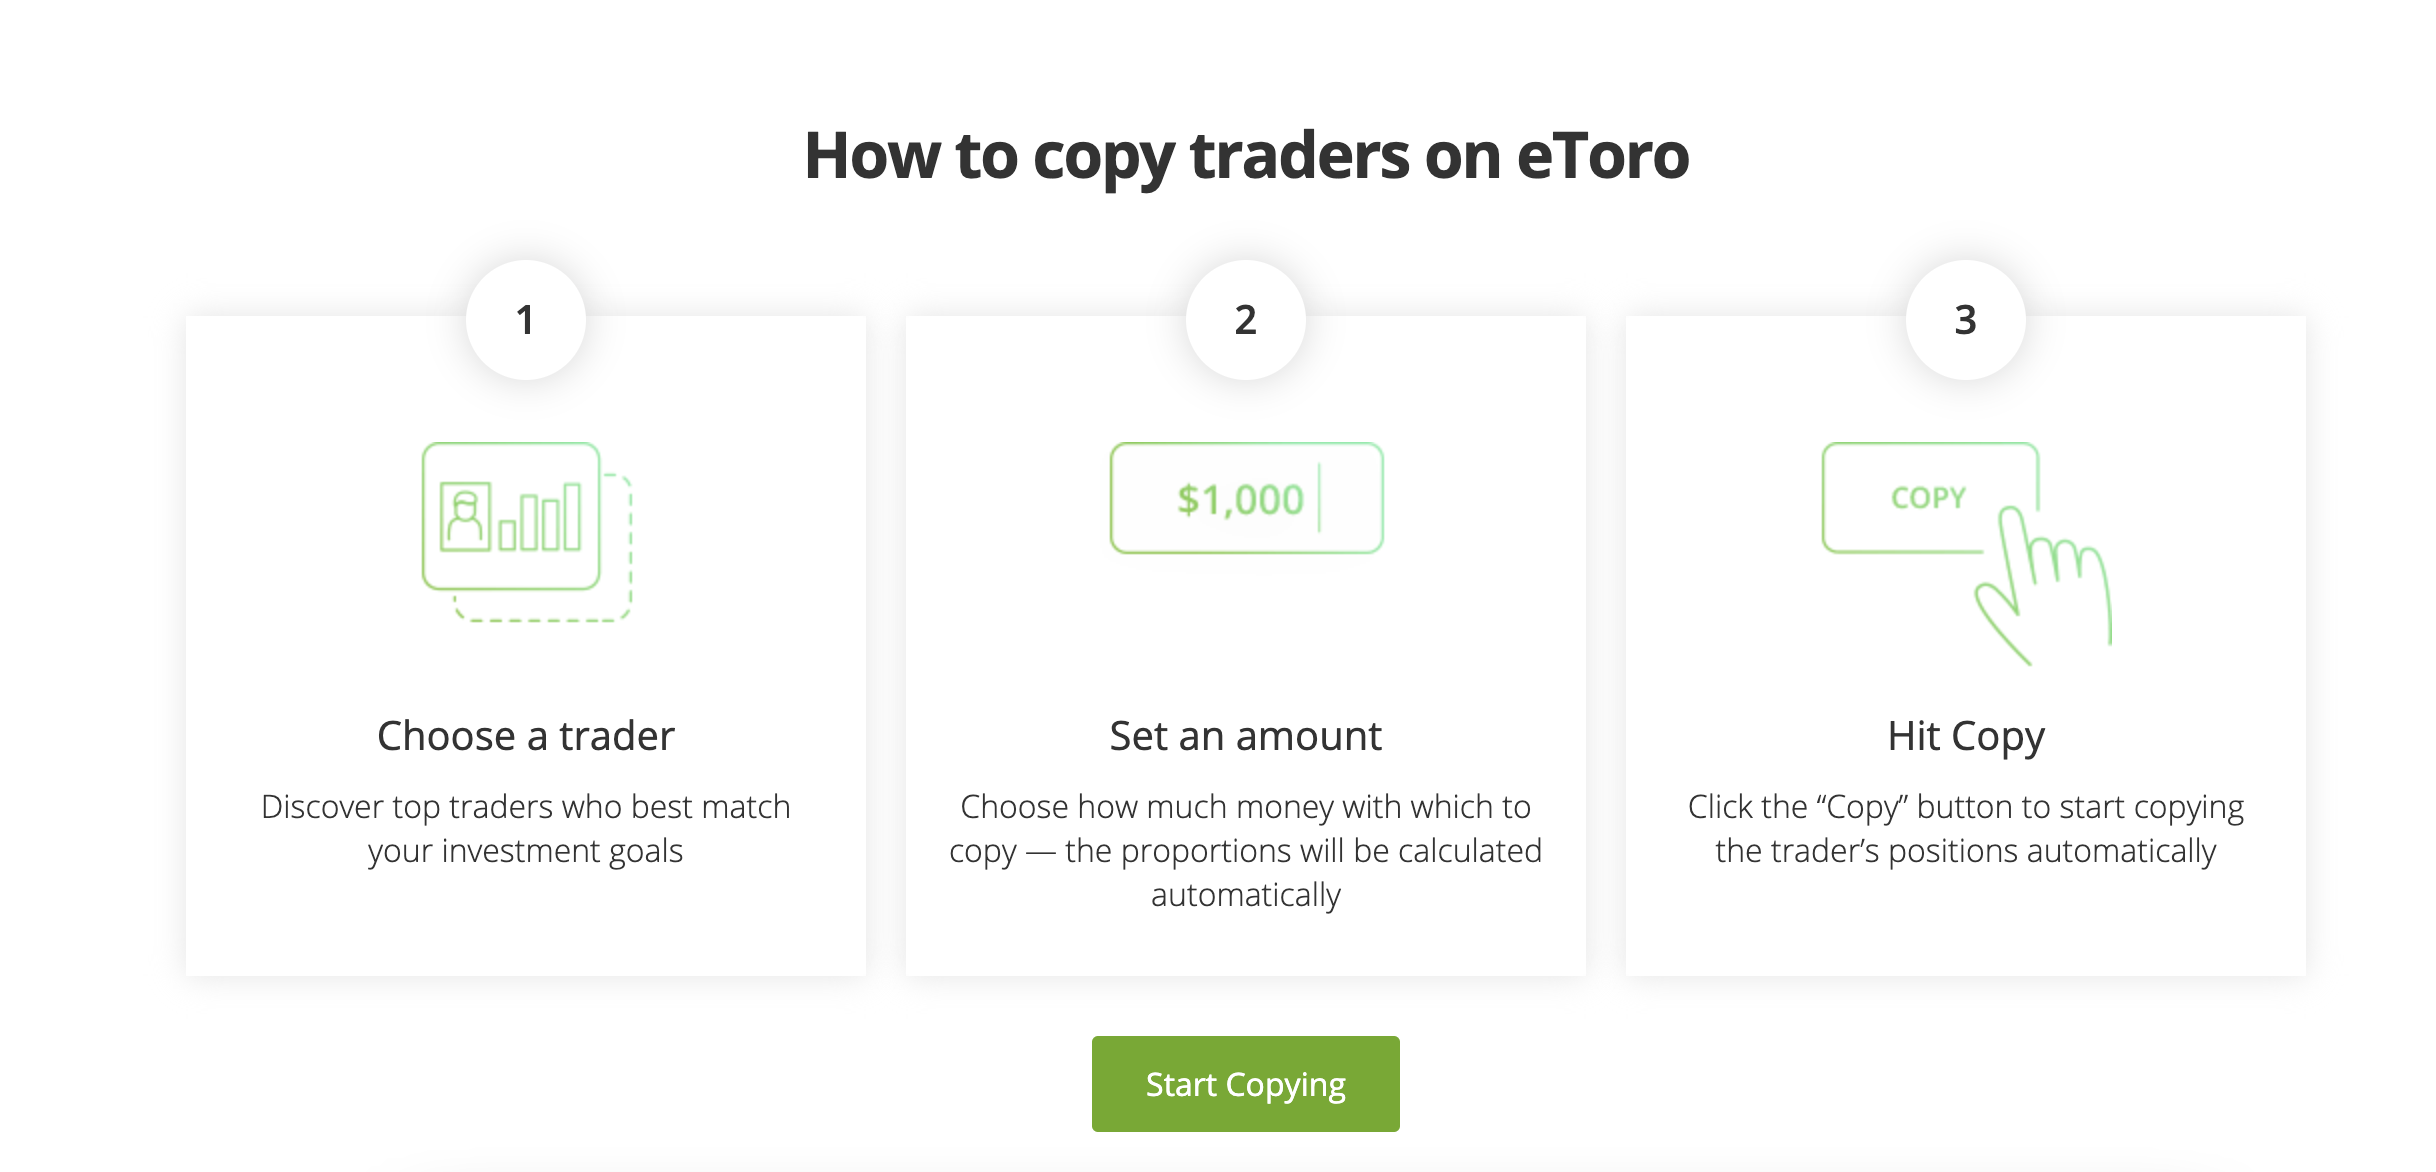 """A screenshot from etoro.com explaining how to use the copy trader tool on the platform. First you choose a trader, then you set an amount (proportions based on the copy trader's choices are calculated automatically for you), and then you click """"copy."""" Everything is done automatically through the app, so you don't have to worry about studying the markets."""